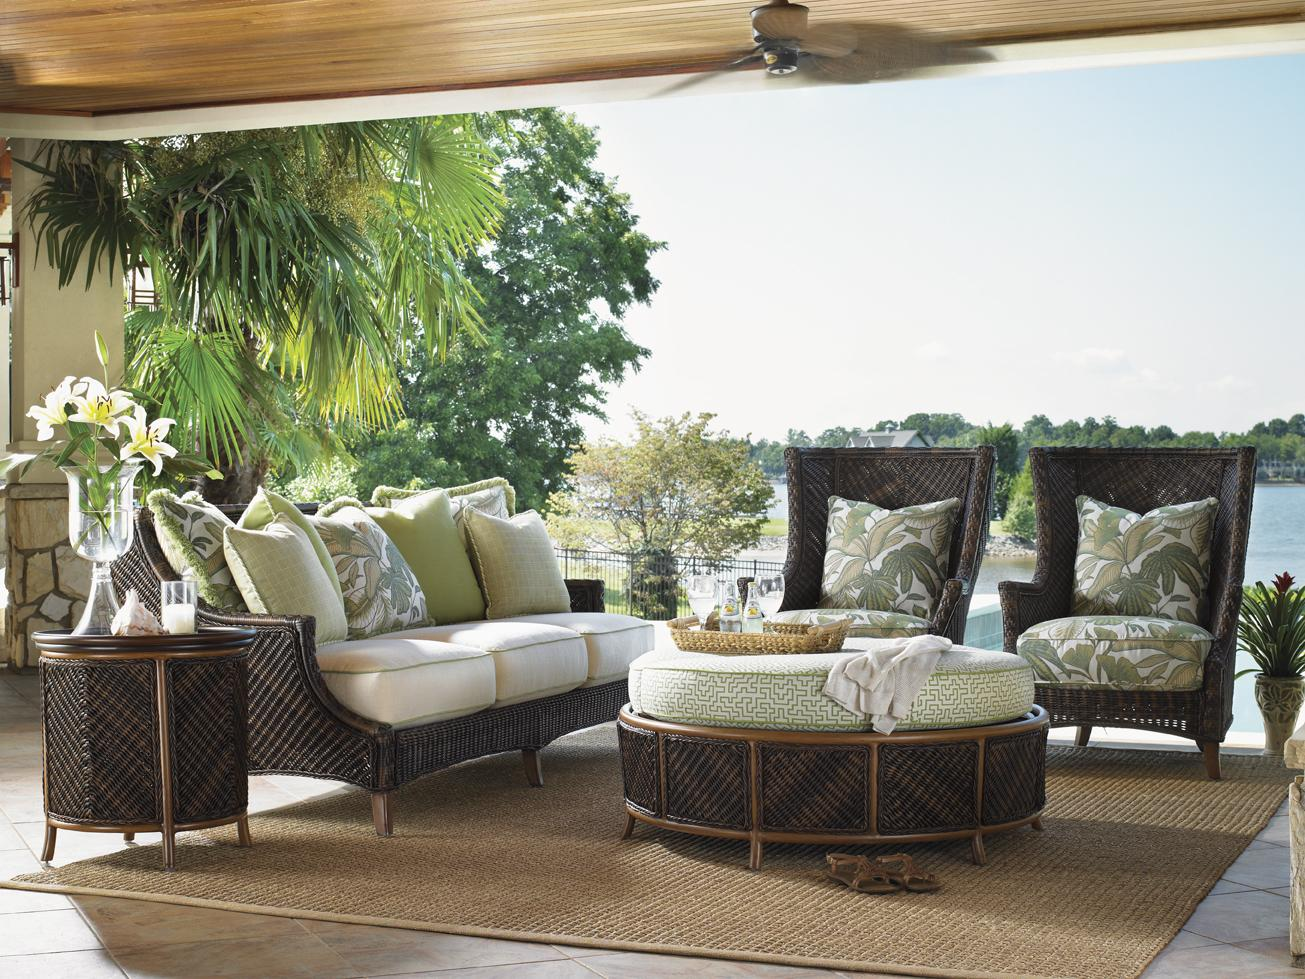 Island estate lanai 3170 by tommy bahama outdoor living for Sofas mimbre exterior